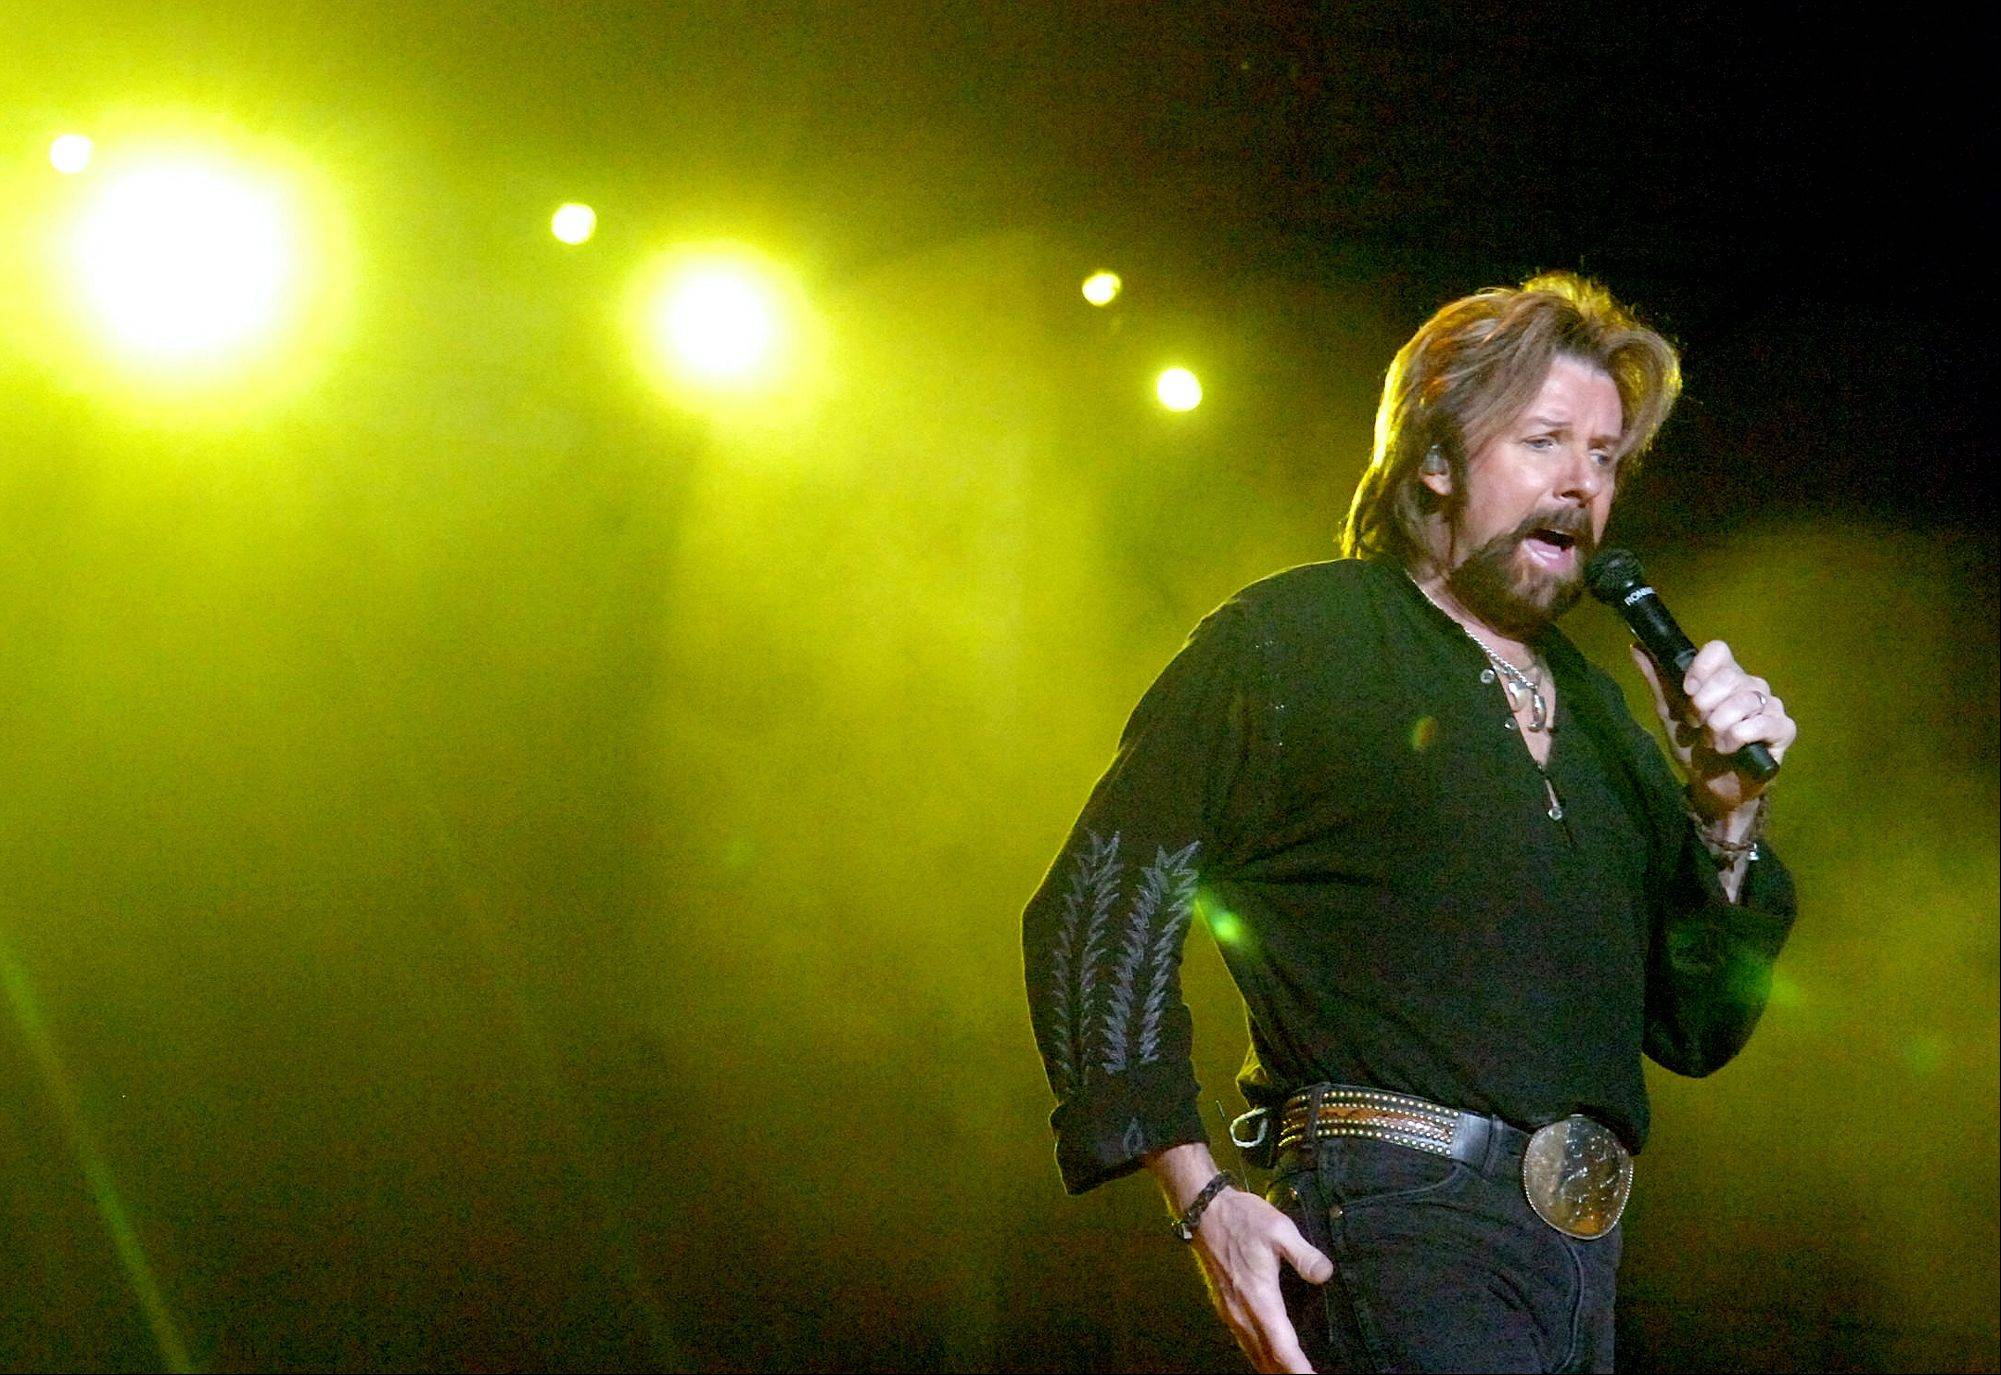 Country music's Ronnie Dunn will be the featured performer this summer at the eighth annual Rockin' for the Troops concert at Cantigny Park in Wheaton. He replaces Gary Sinise, the longtime face of the event.